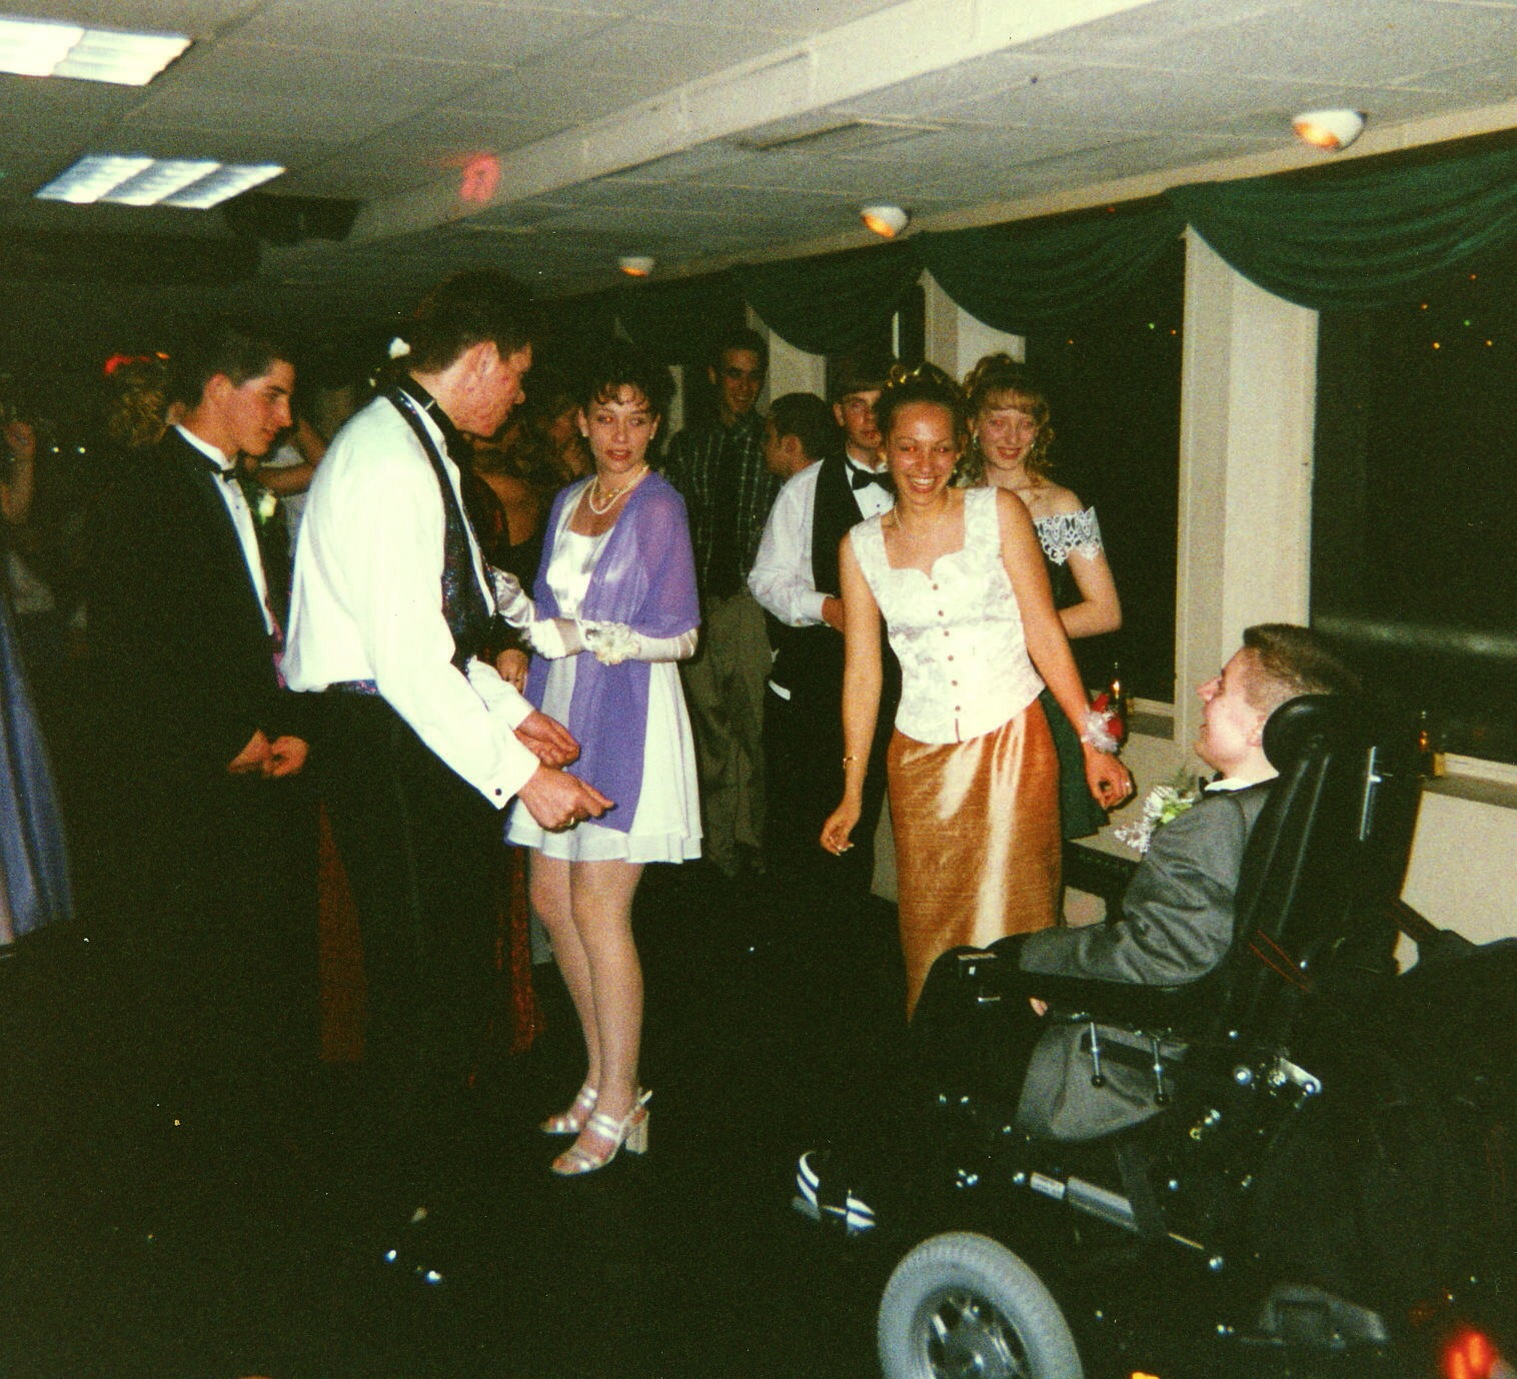 Ben on the dance floor with Angela, prom night, 1996.